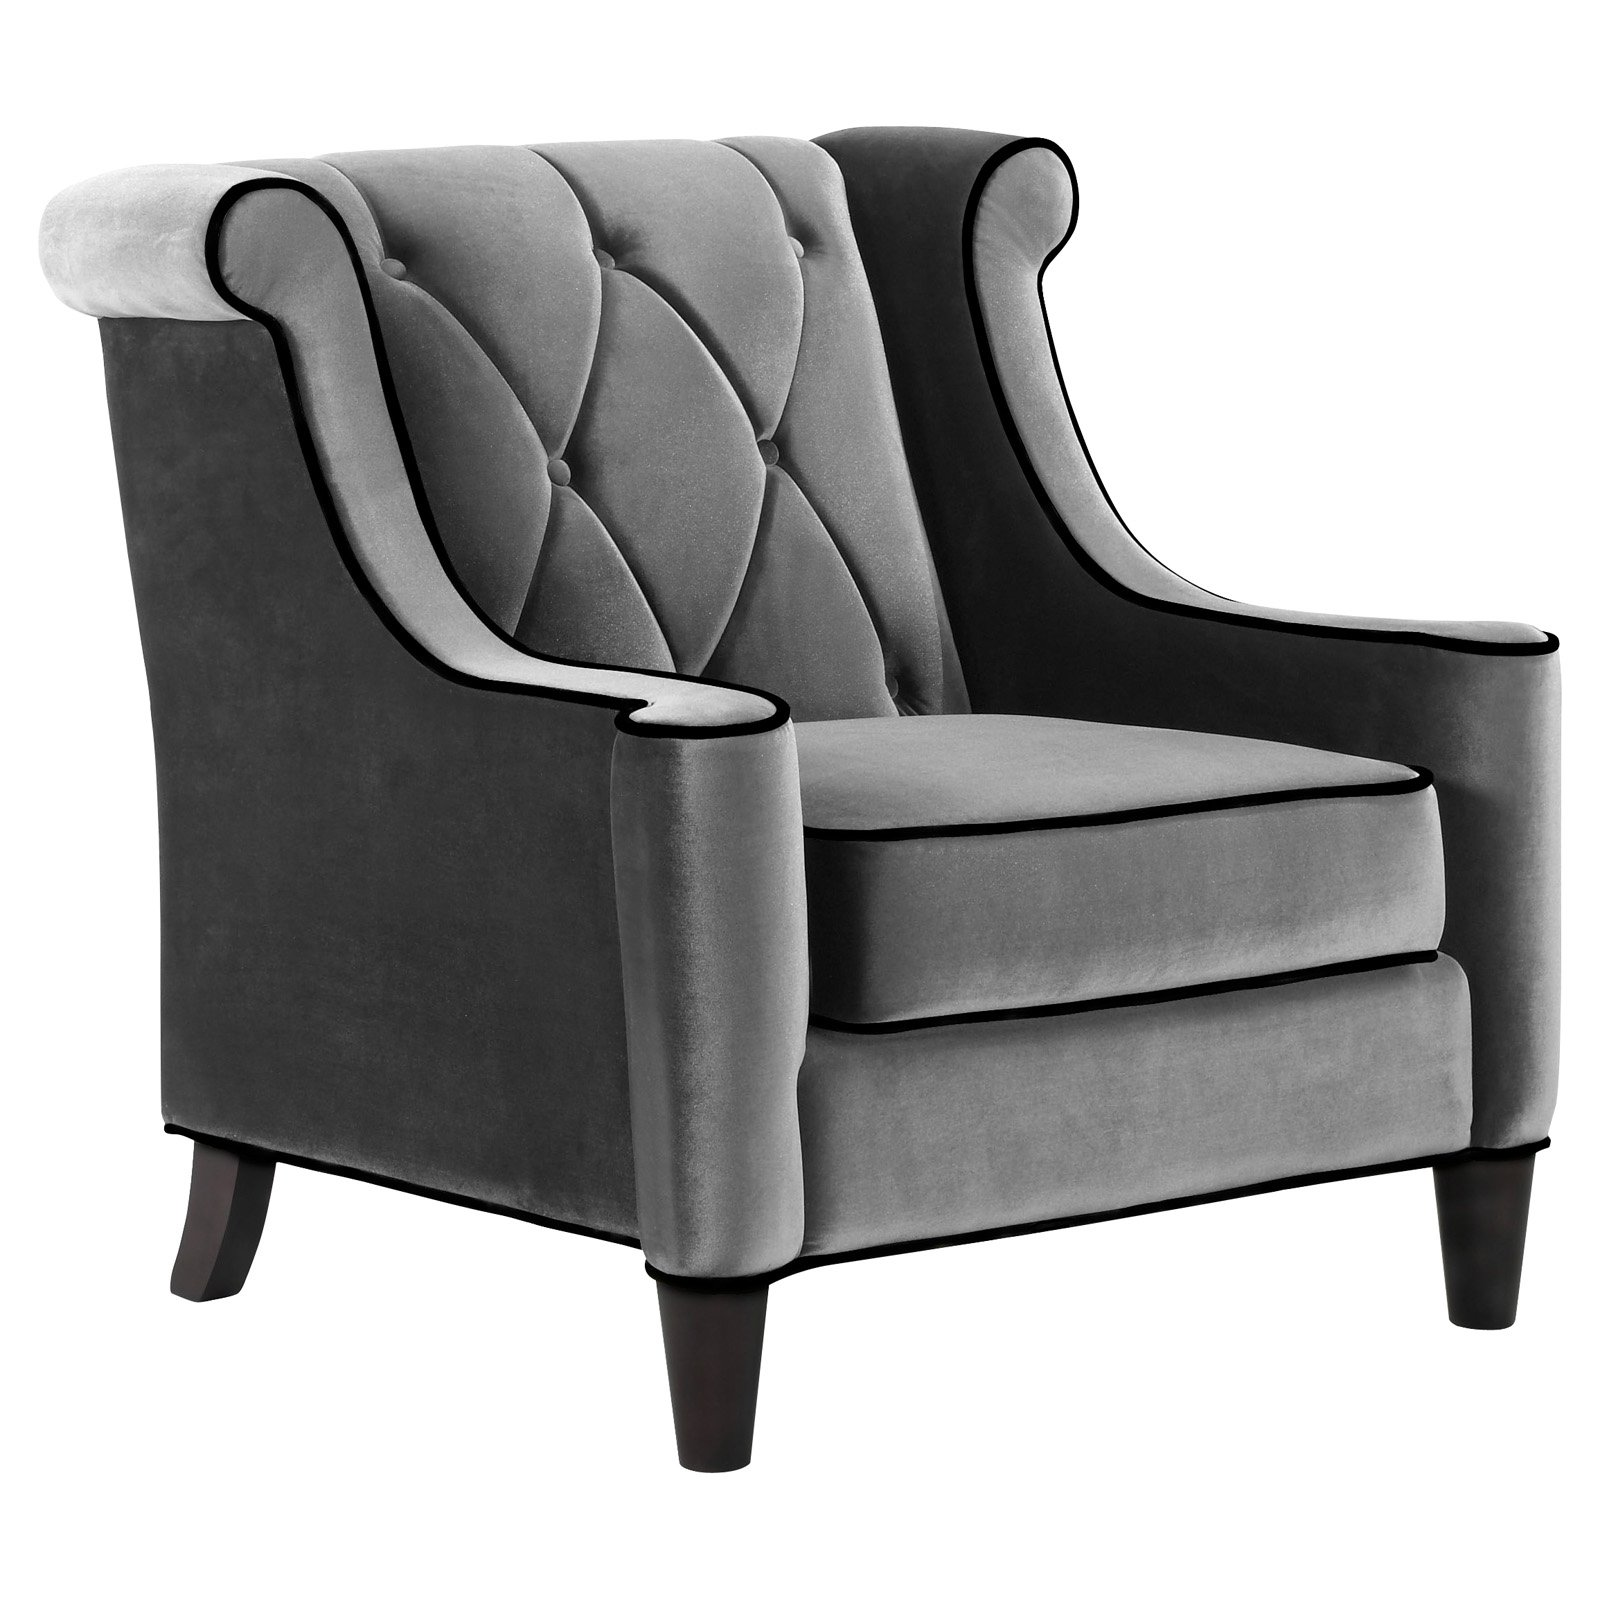 Armen Living Barrister Chair, Gray Velvet with Black Piping